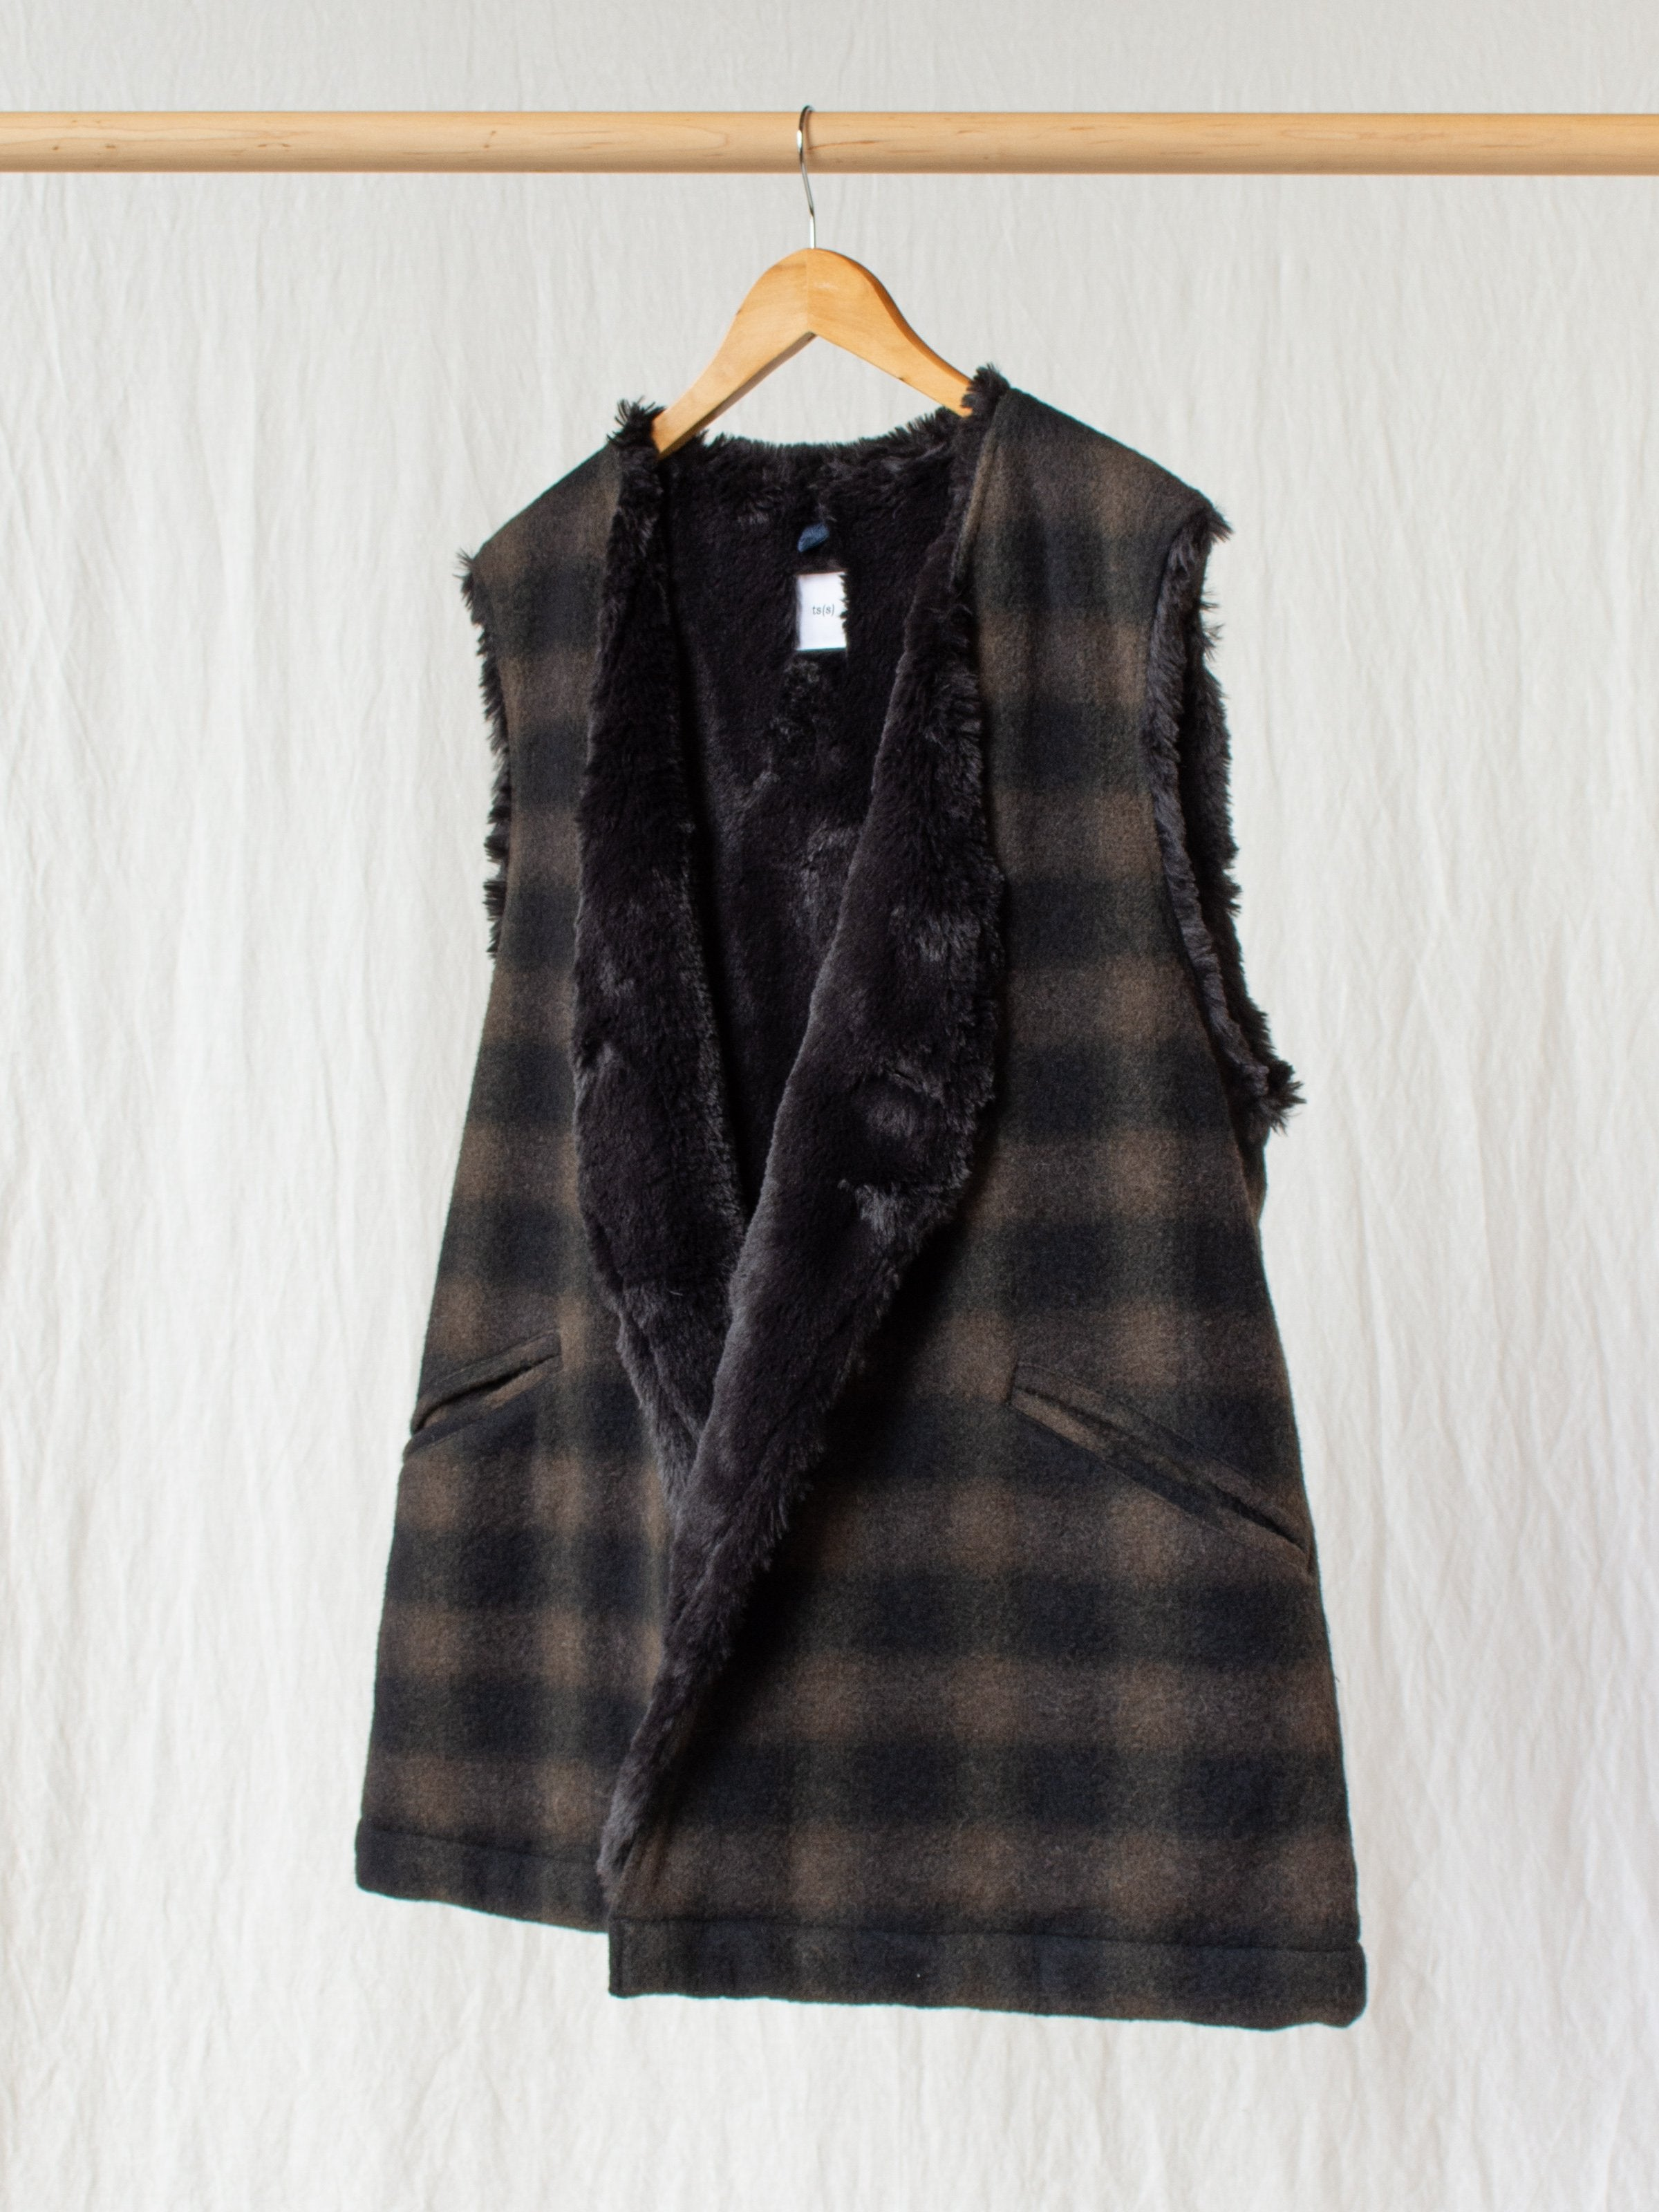 Boa Lined Belted Vest - Ombre Plaid Wool